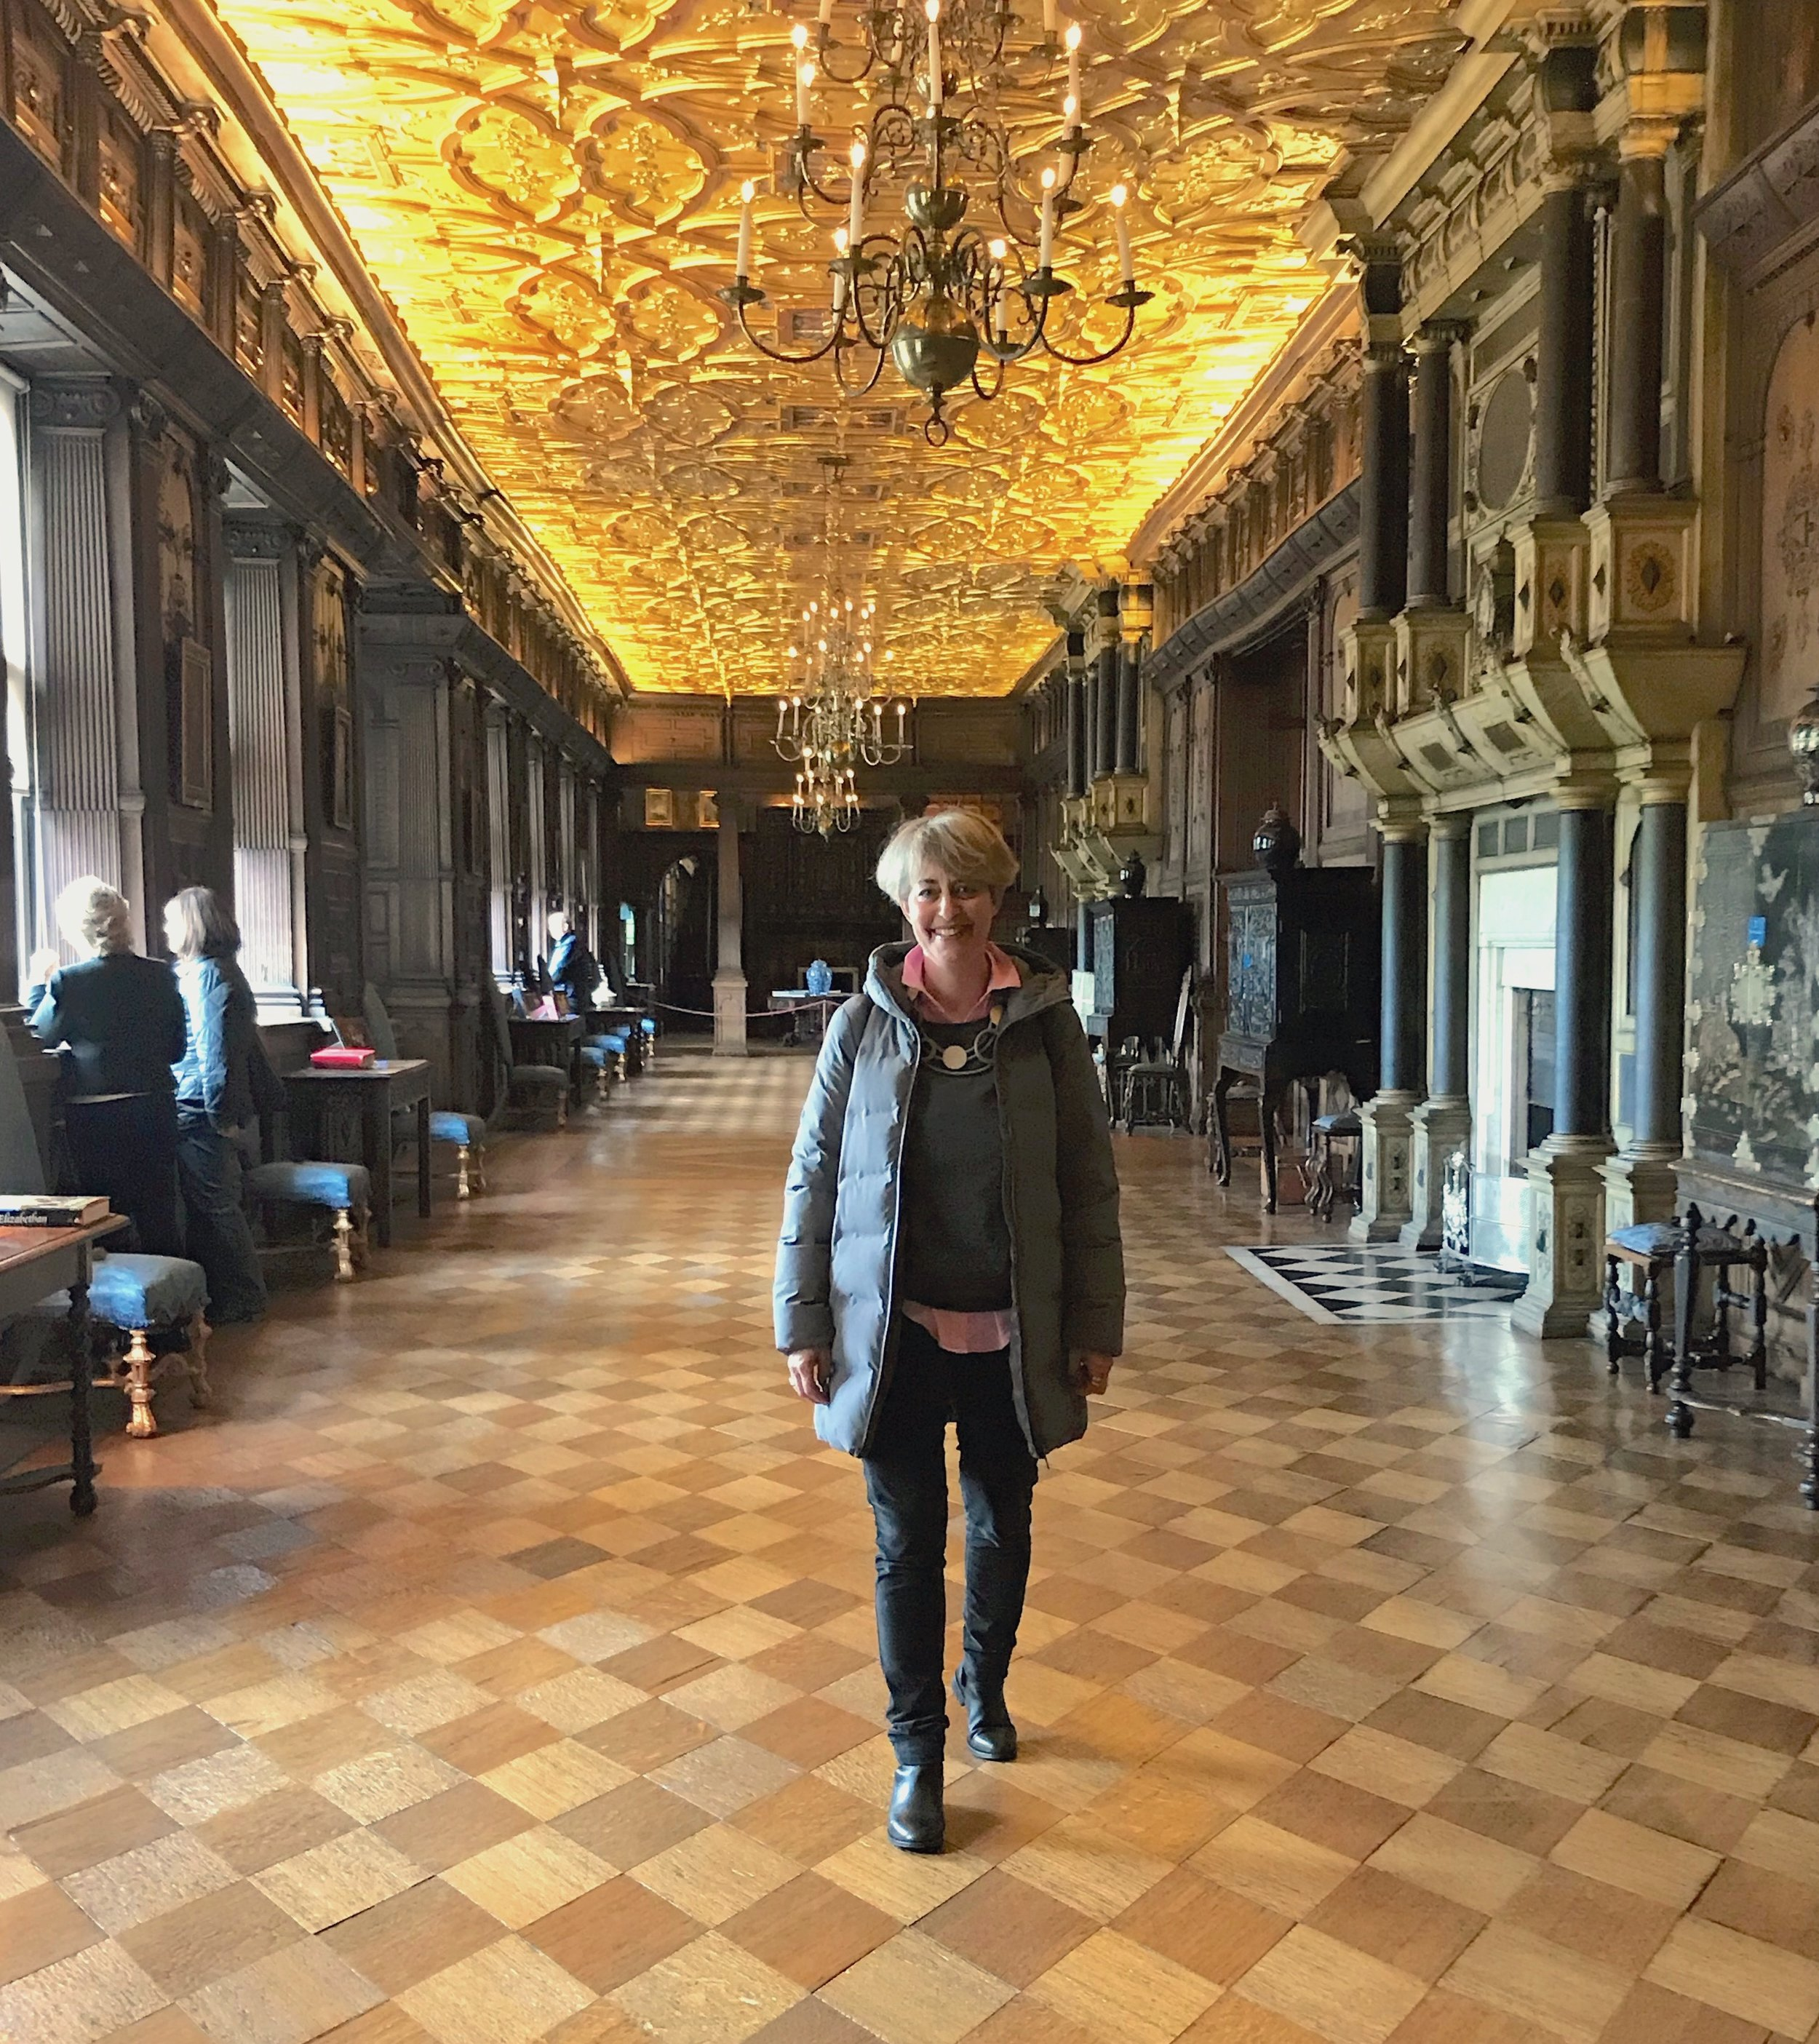 The Long Gallery, where 21st century women can walk in the footsteps of their Jacobean ancestors